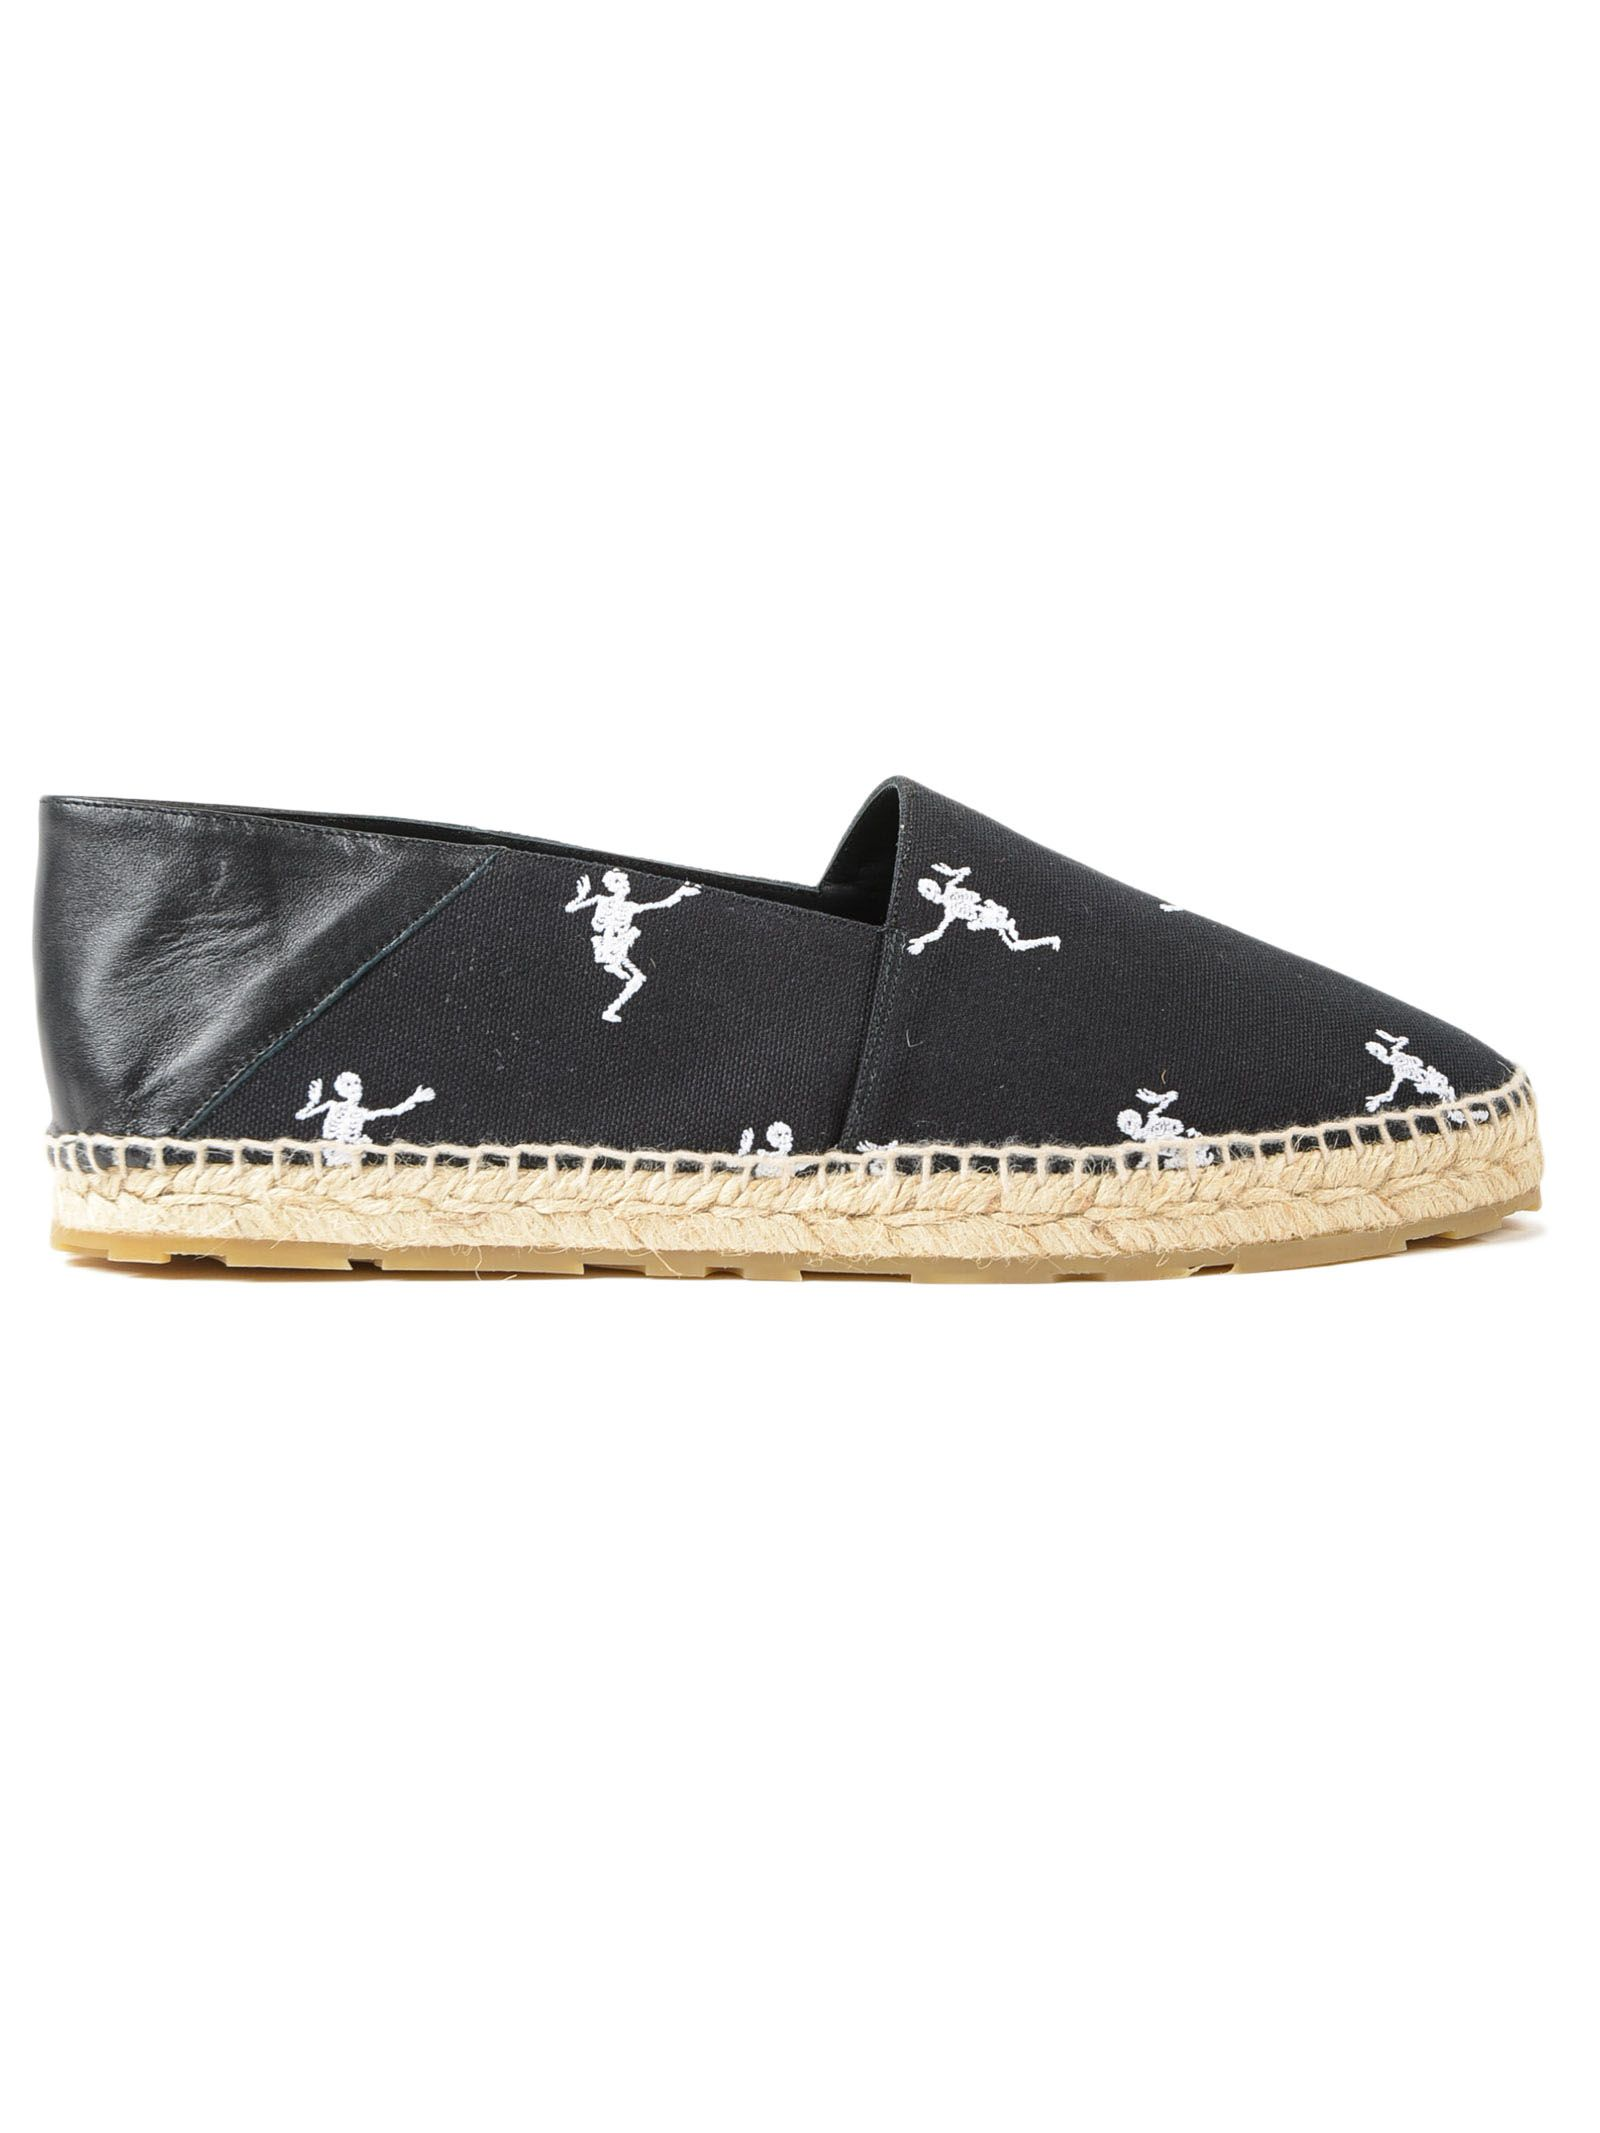 dancing skeleton loafers - Black Alexander McQueen Affordable Buy Cheap Pick A Best Cheap 2018 Unisex Affordable Free Shipping Websites WOJ2jsM